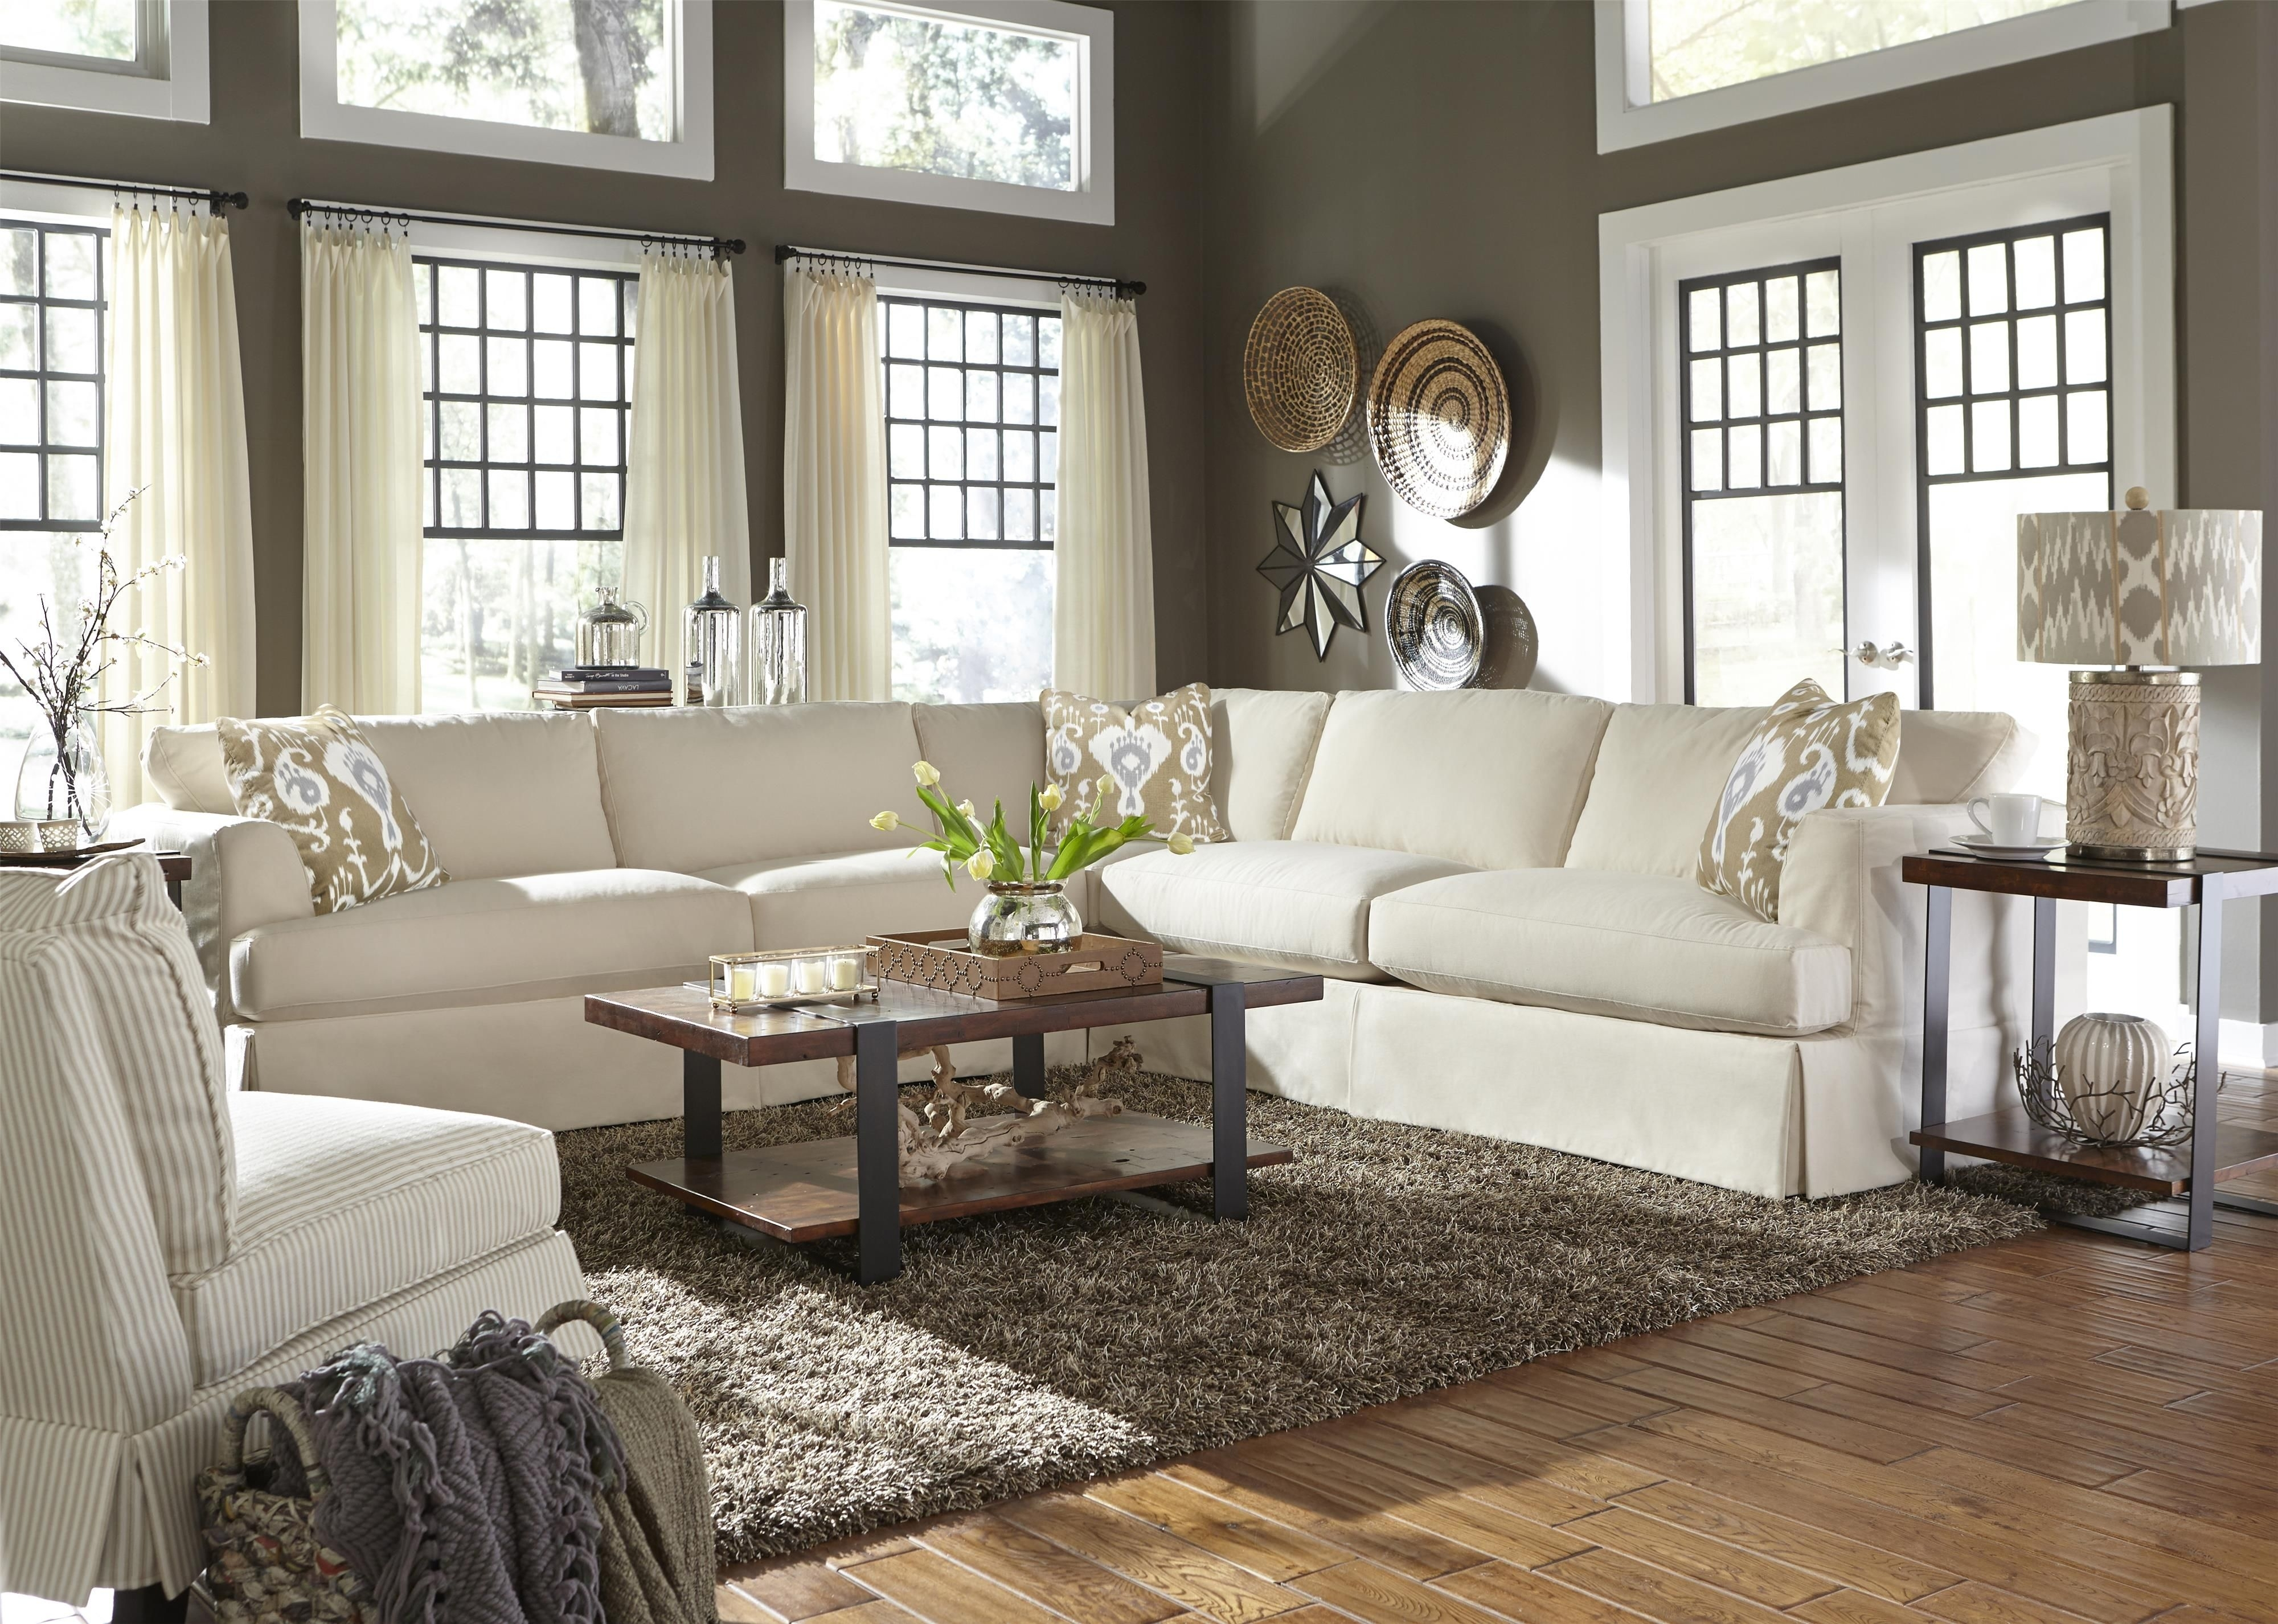 Pindonna Pixley On For The Home | Pinterest | Living Rooms, Room Regarding Sectional Sofas At Sam's Club (View 15 of 15)